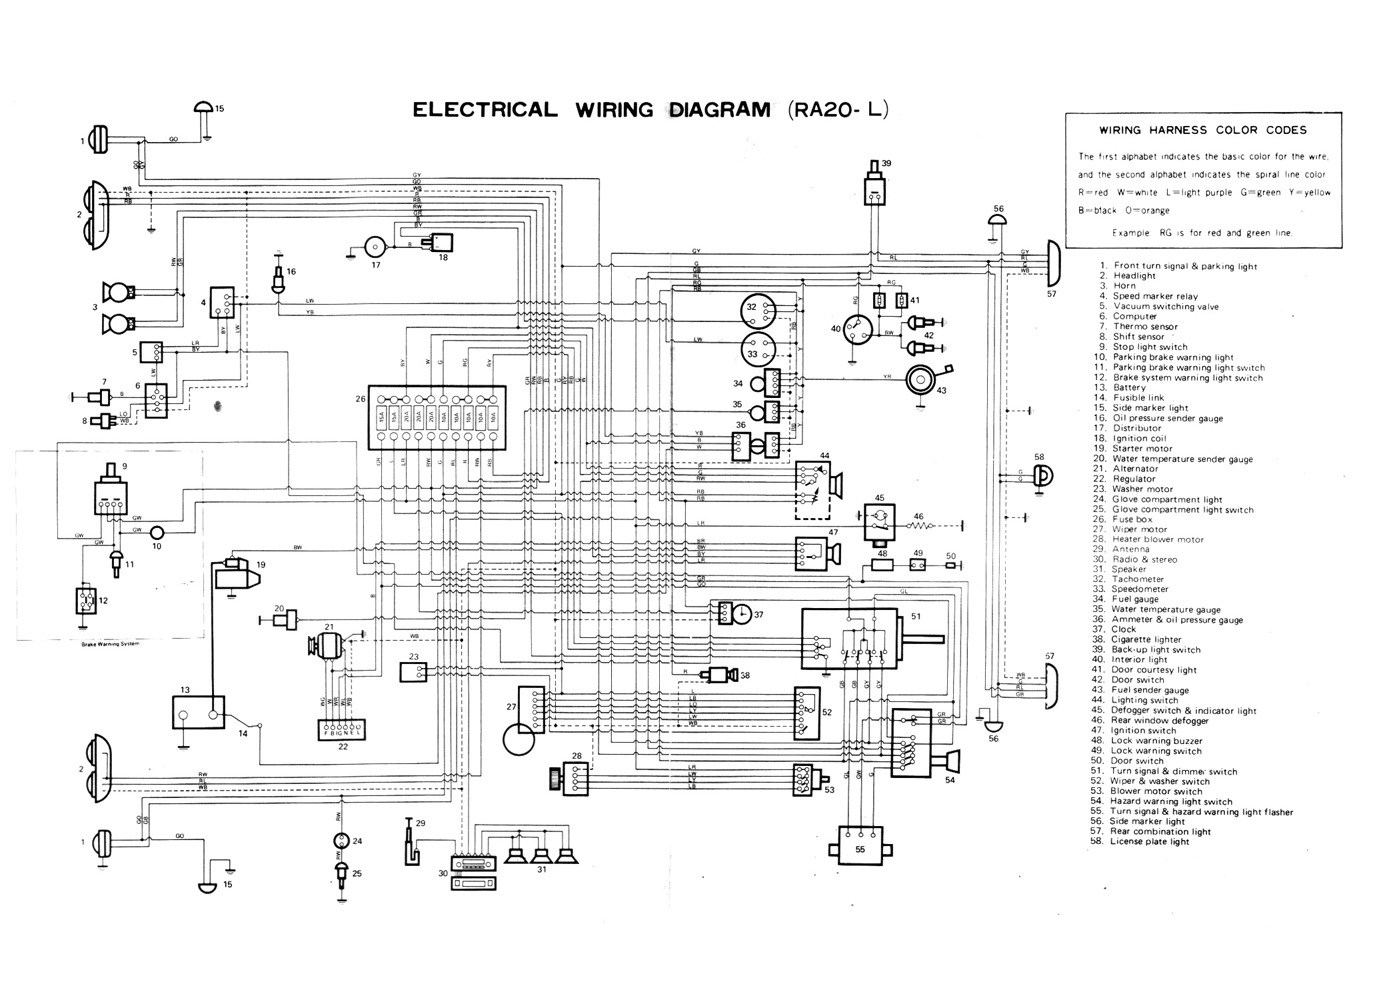 2004 international 4300 wiring diagram